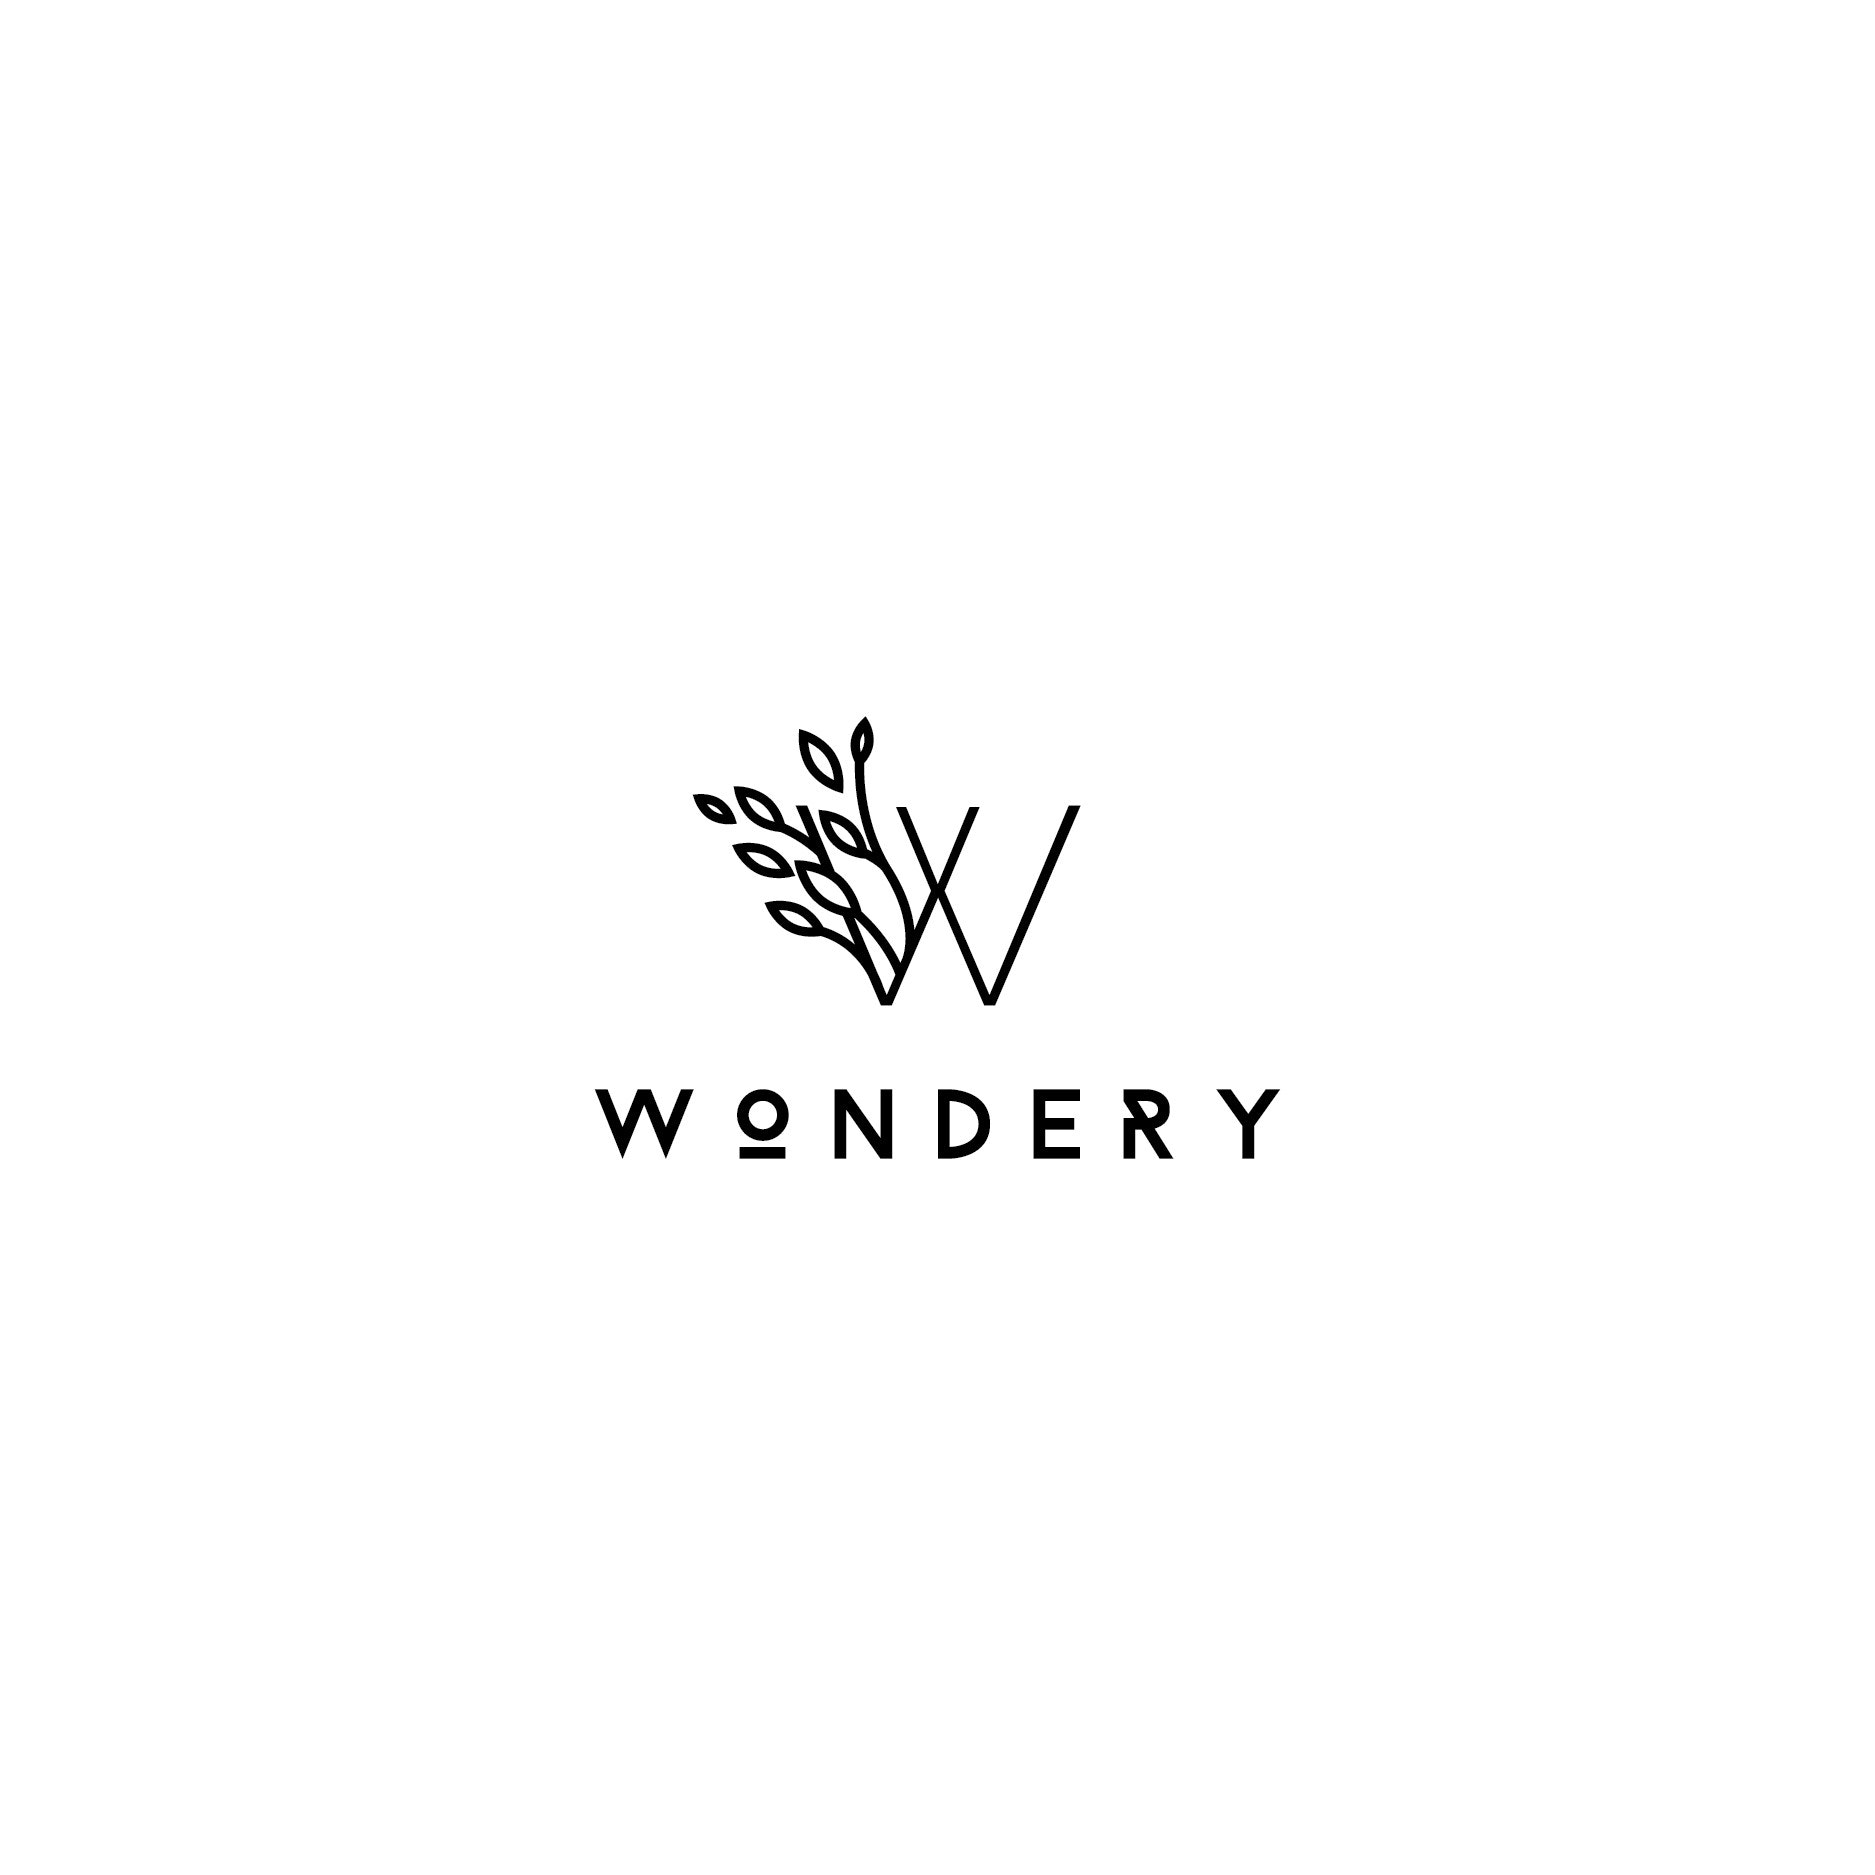 Wondery logo design